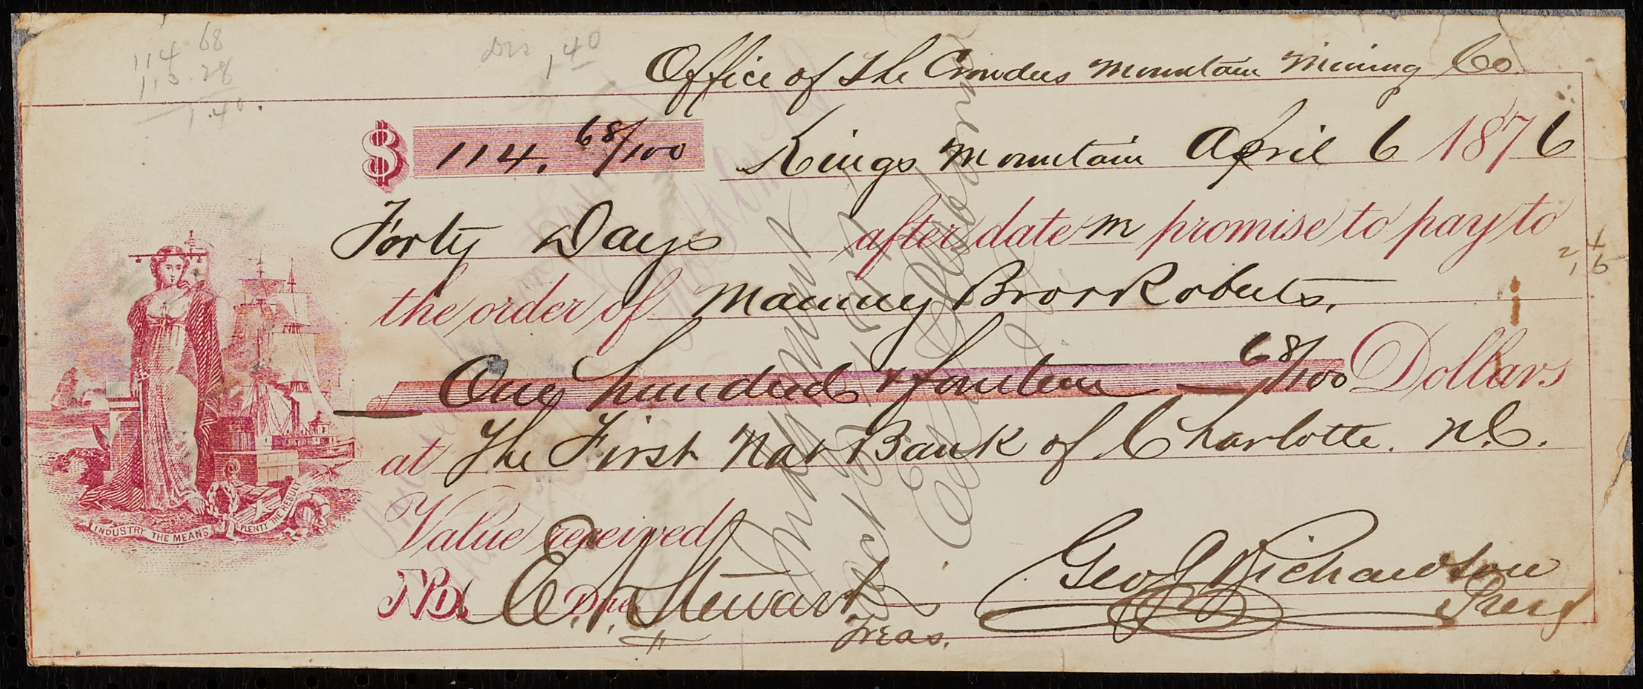 Crowders Mountain Mining Co. Invoice